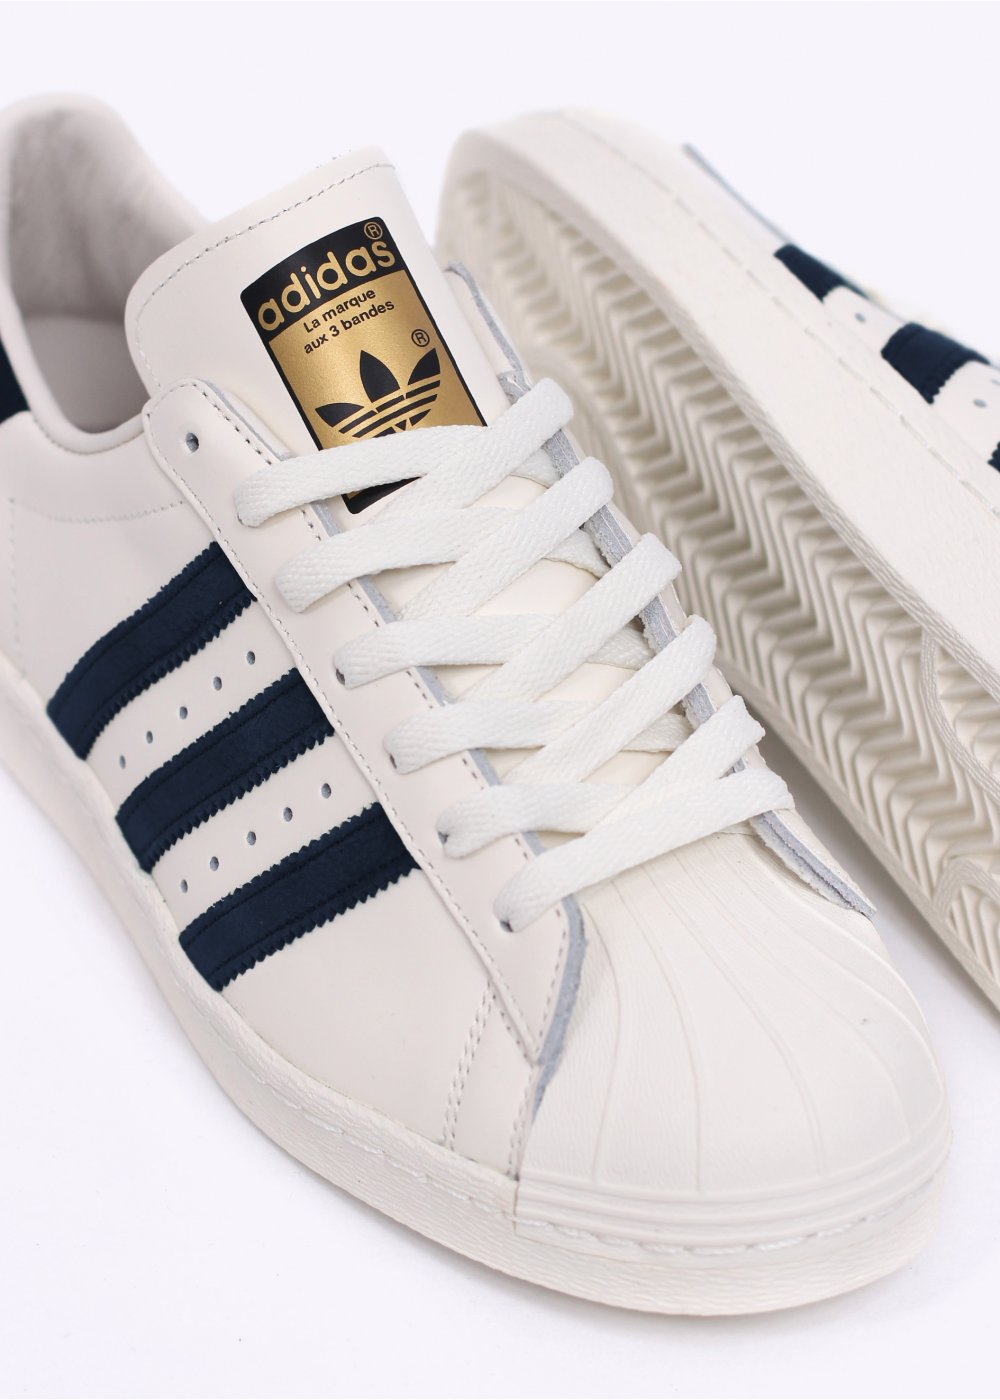 newest c8dee fe113 adidas superstar 80s deluxe shoes>>adidas supercolor sale online